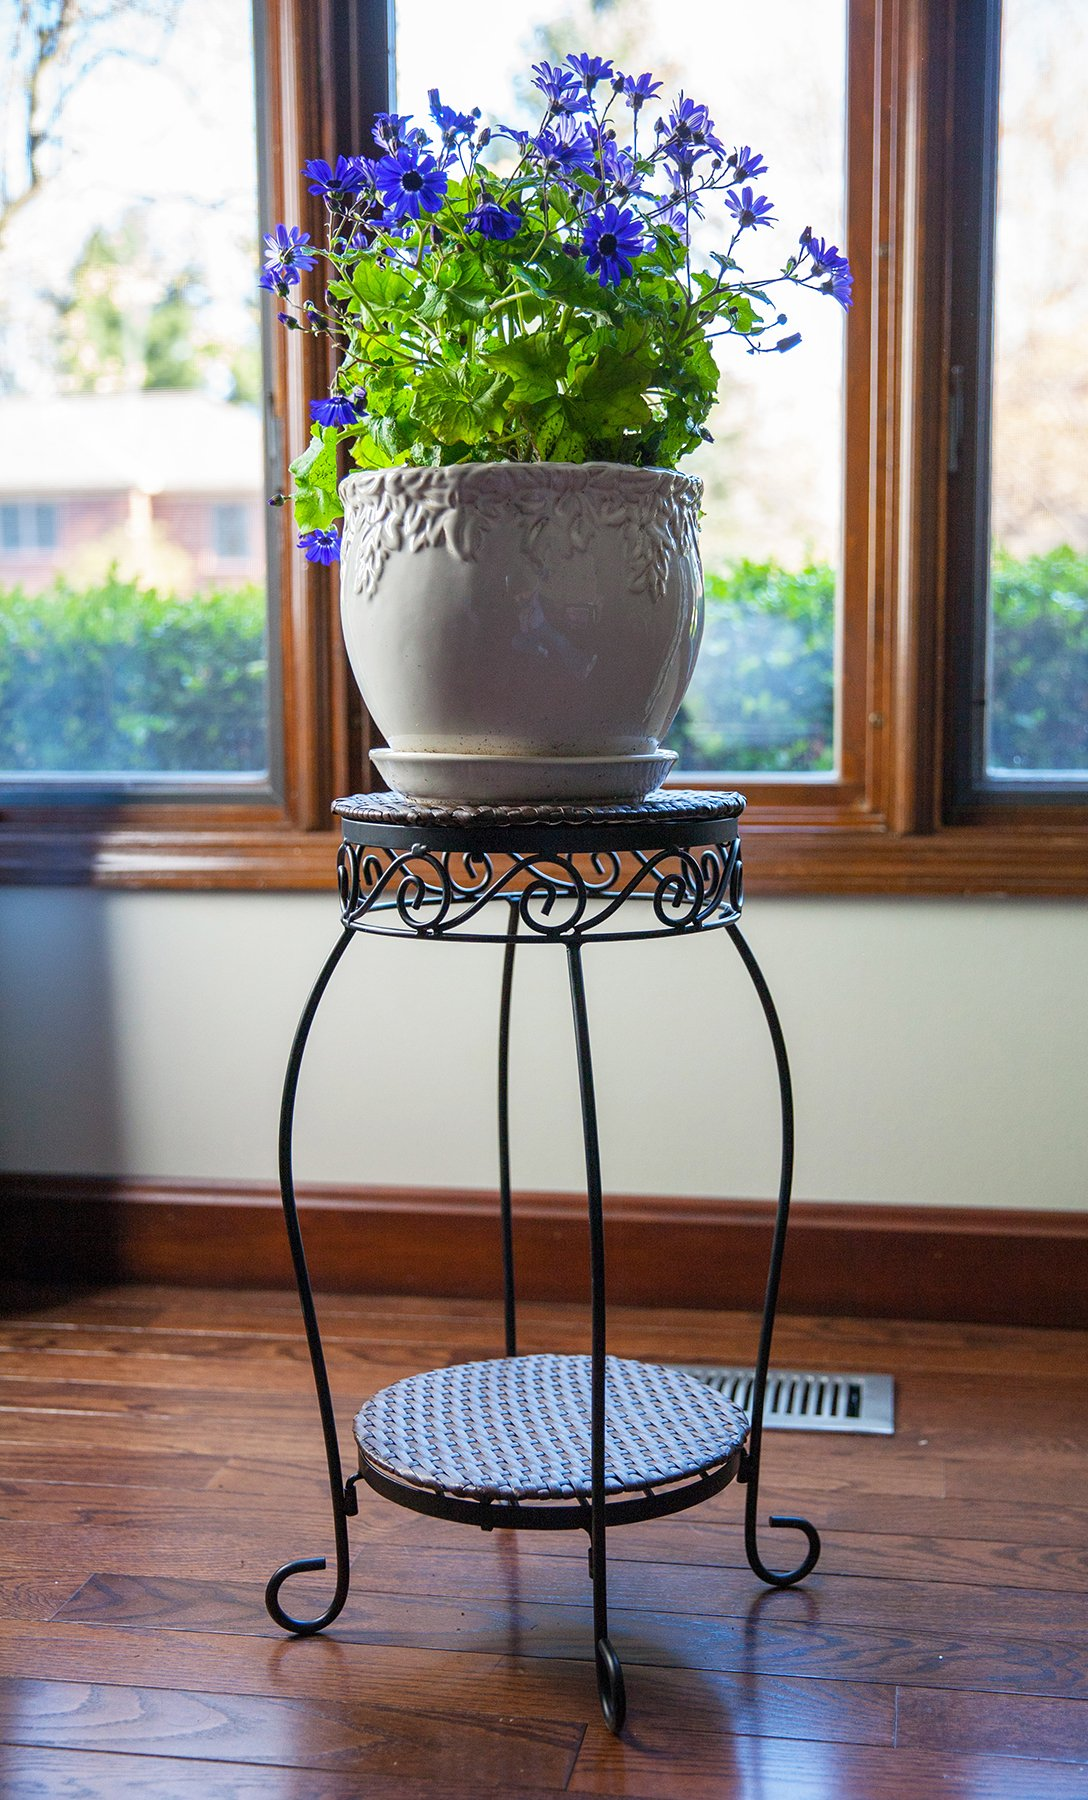 20'' Double Resin Woven Plant Stand, Espresso Brown, Black Wire Frame, 6/cs by Panacea